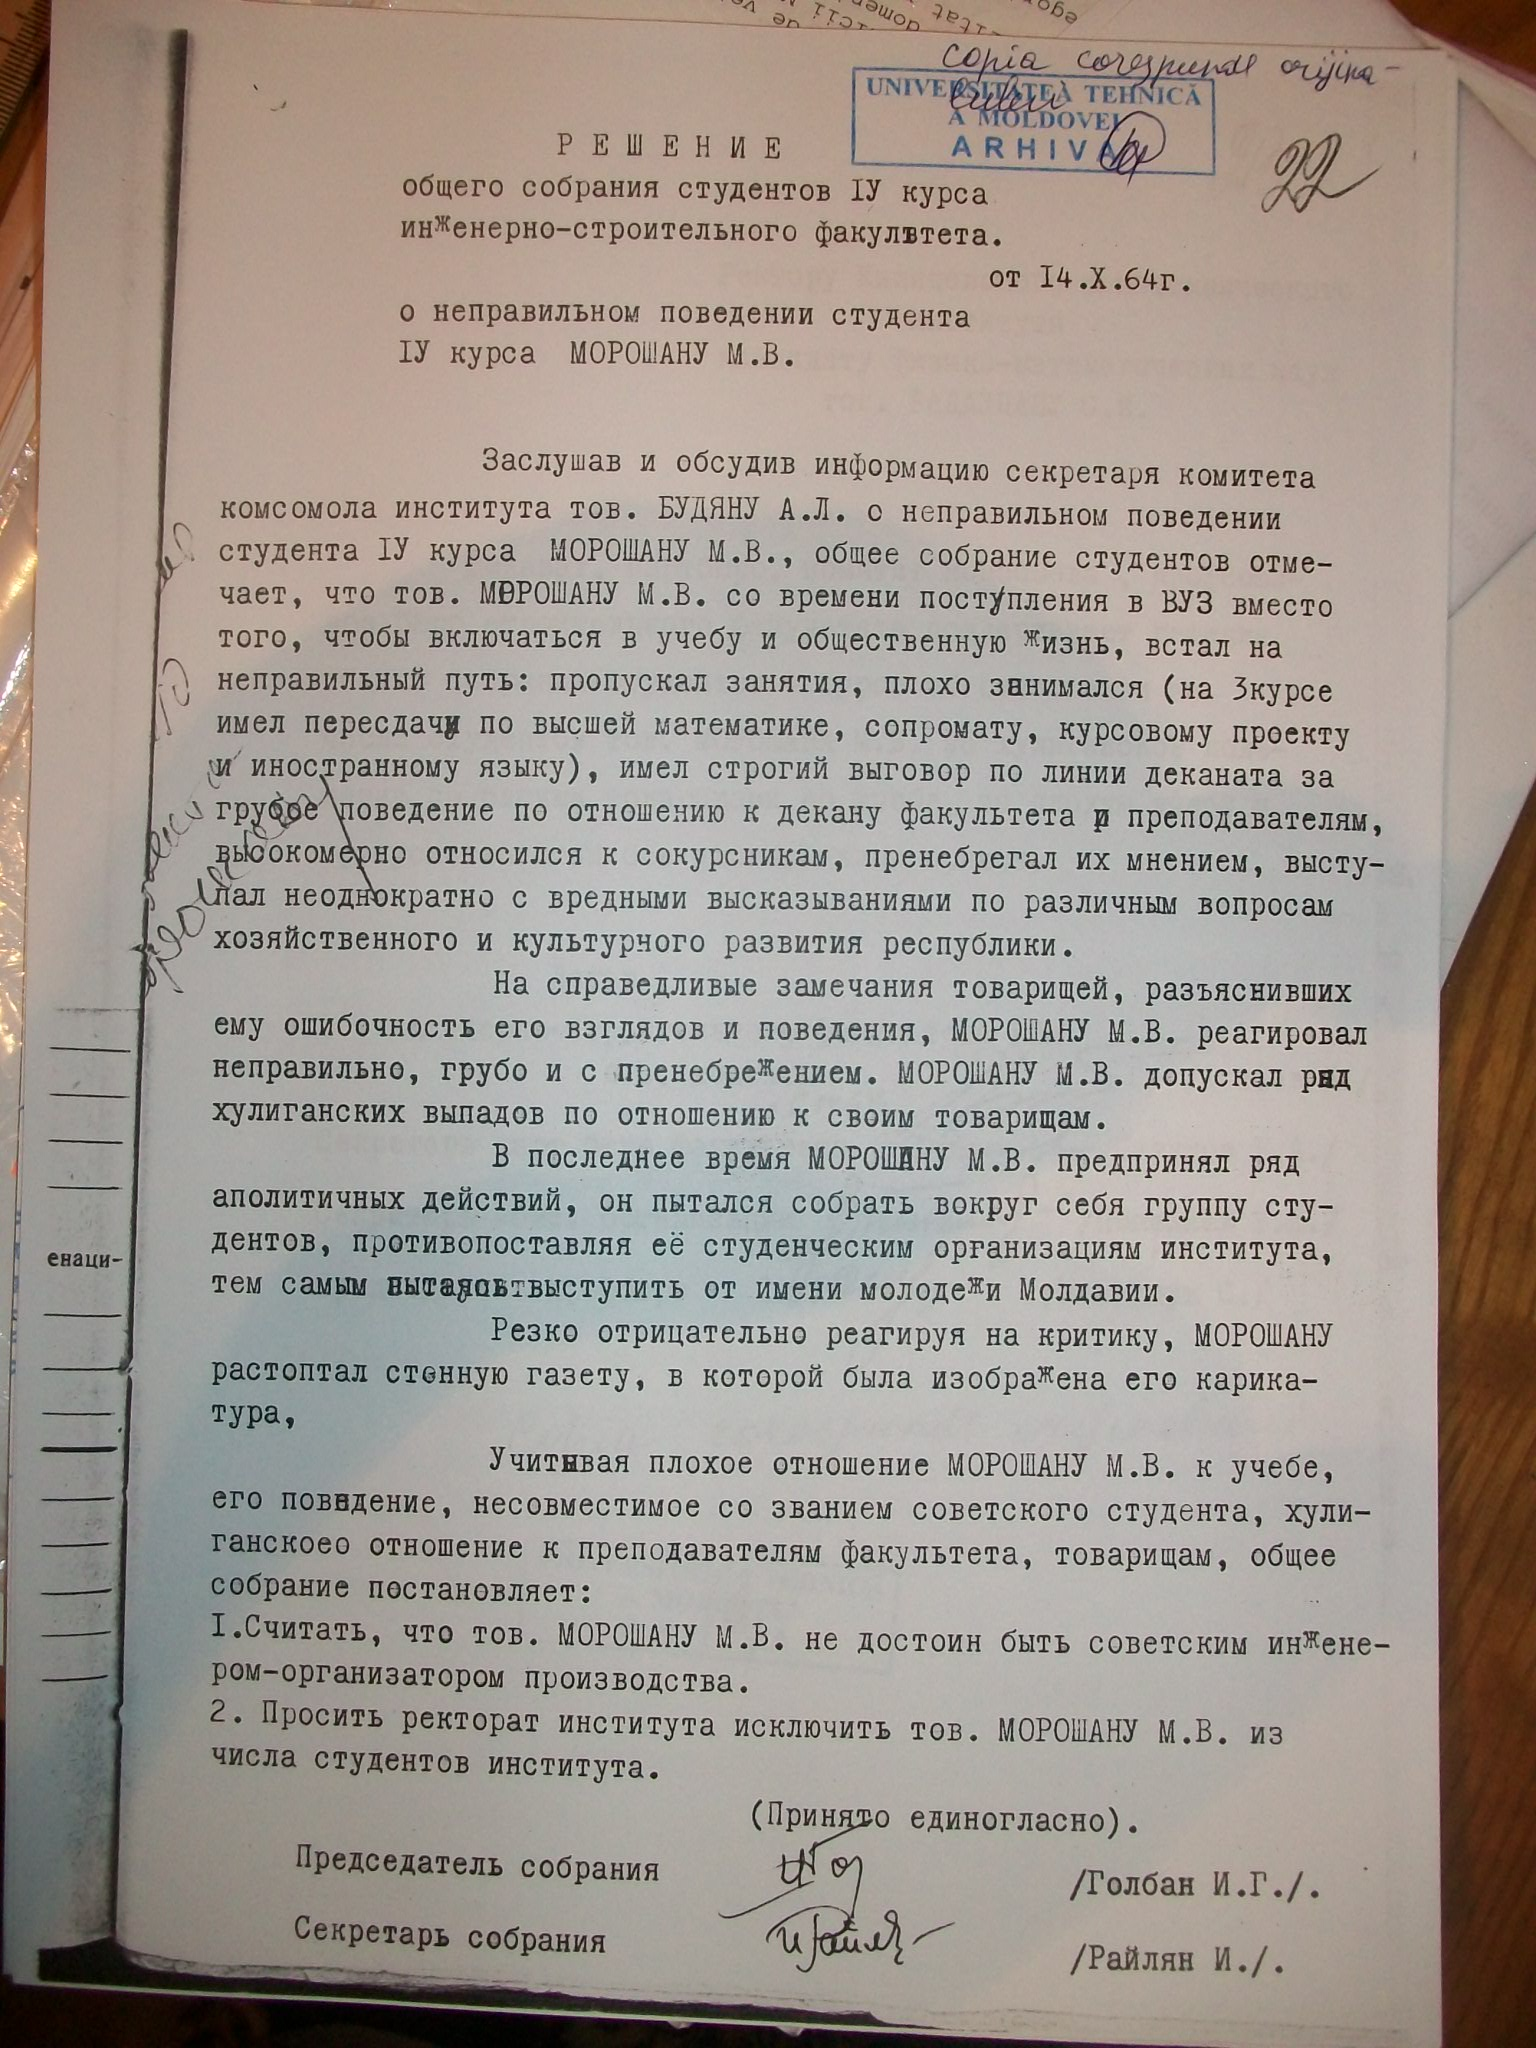 Decision of the Departmental Student Meeting concerning Mihai Moroșanu's 'Incorrect Behaviour', 14 October 1964